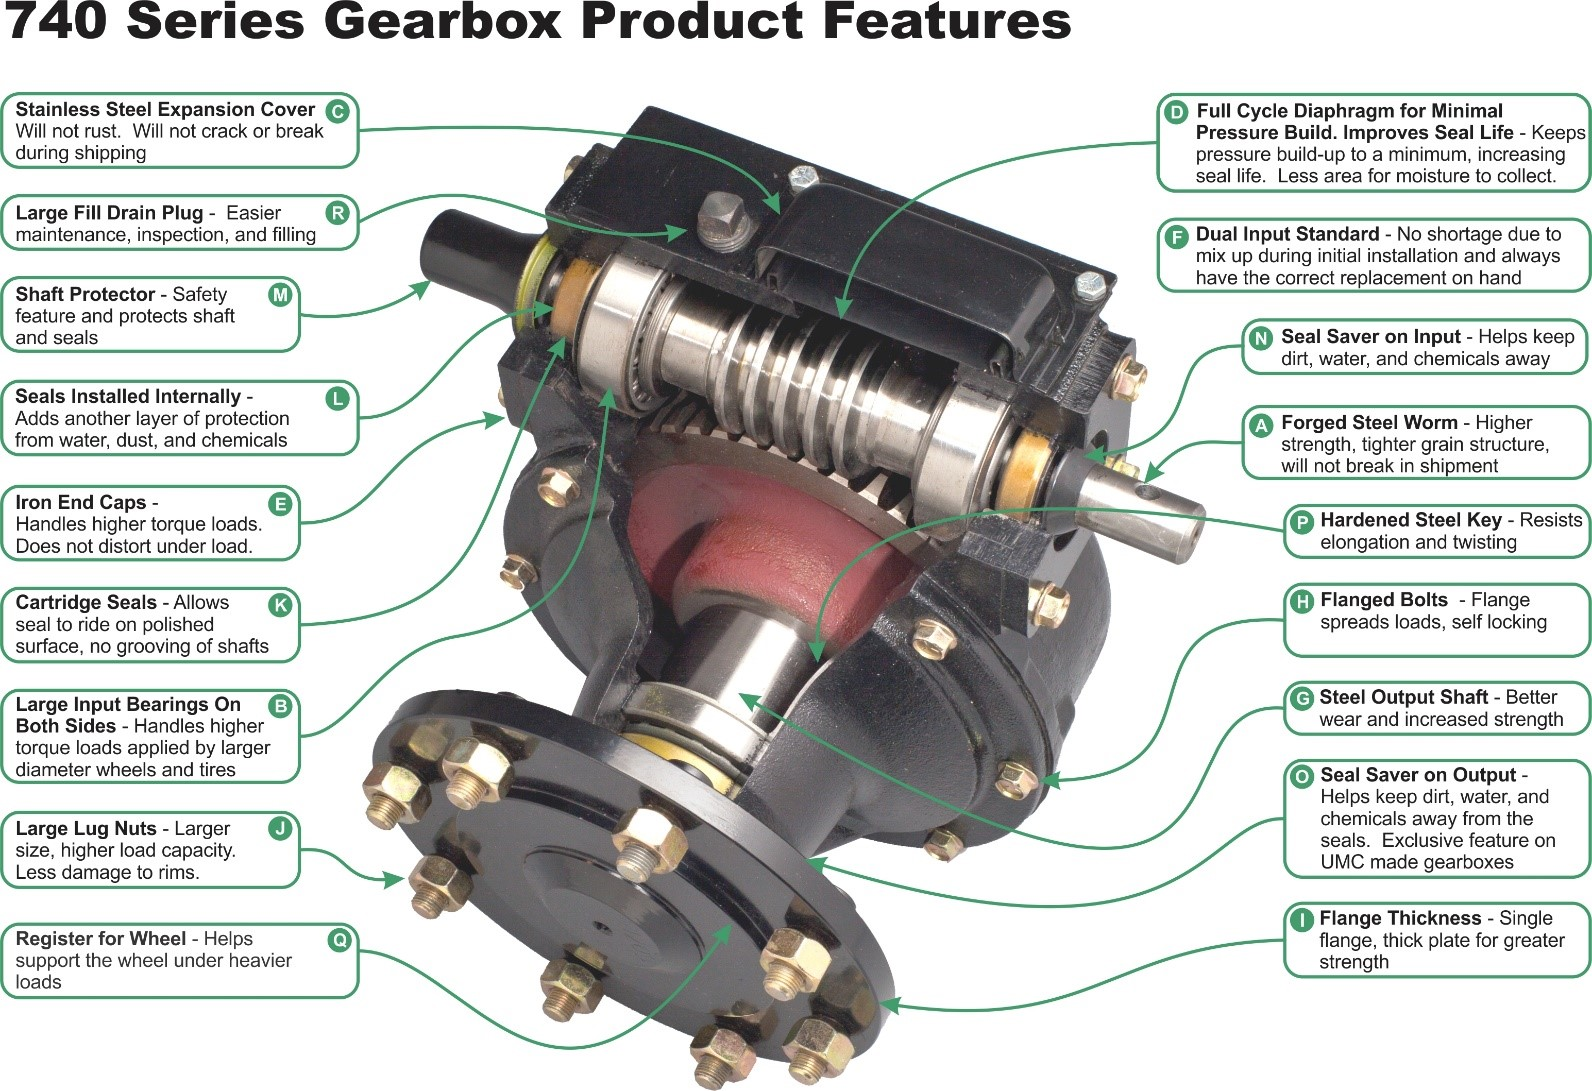 740-U Gearbox Features and Benefits